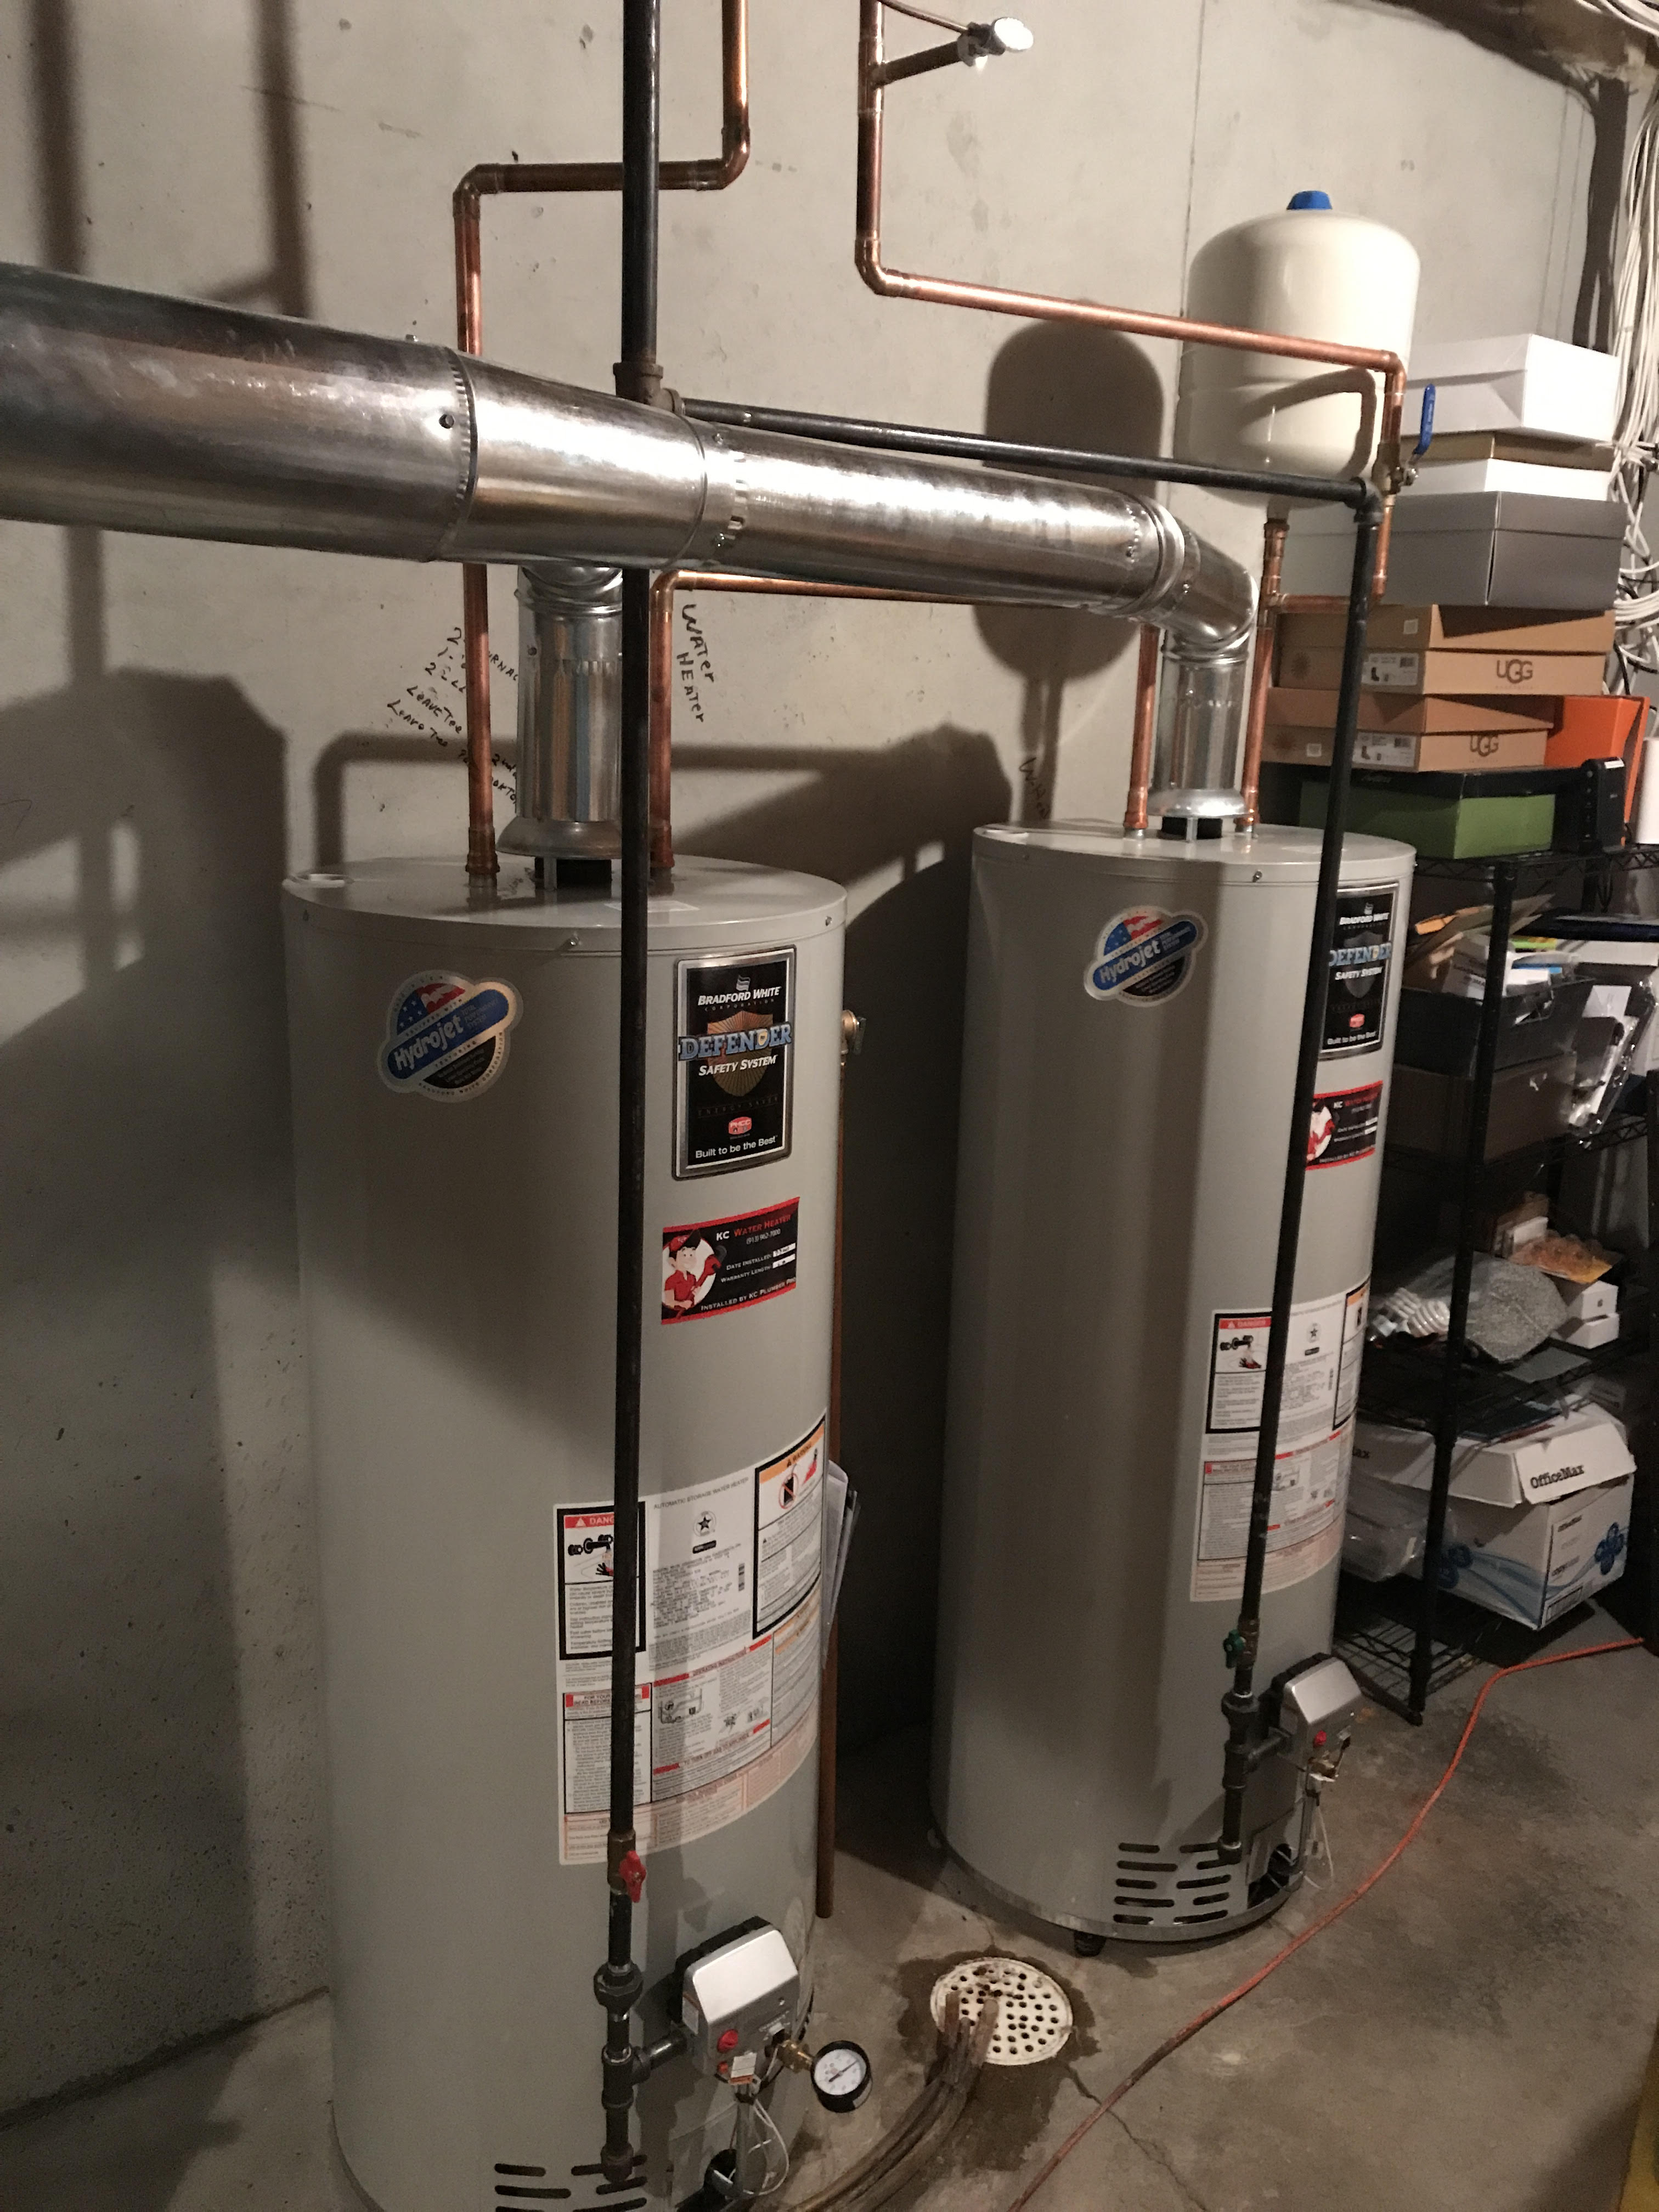 Hook up two water heaters